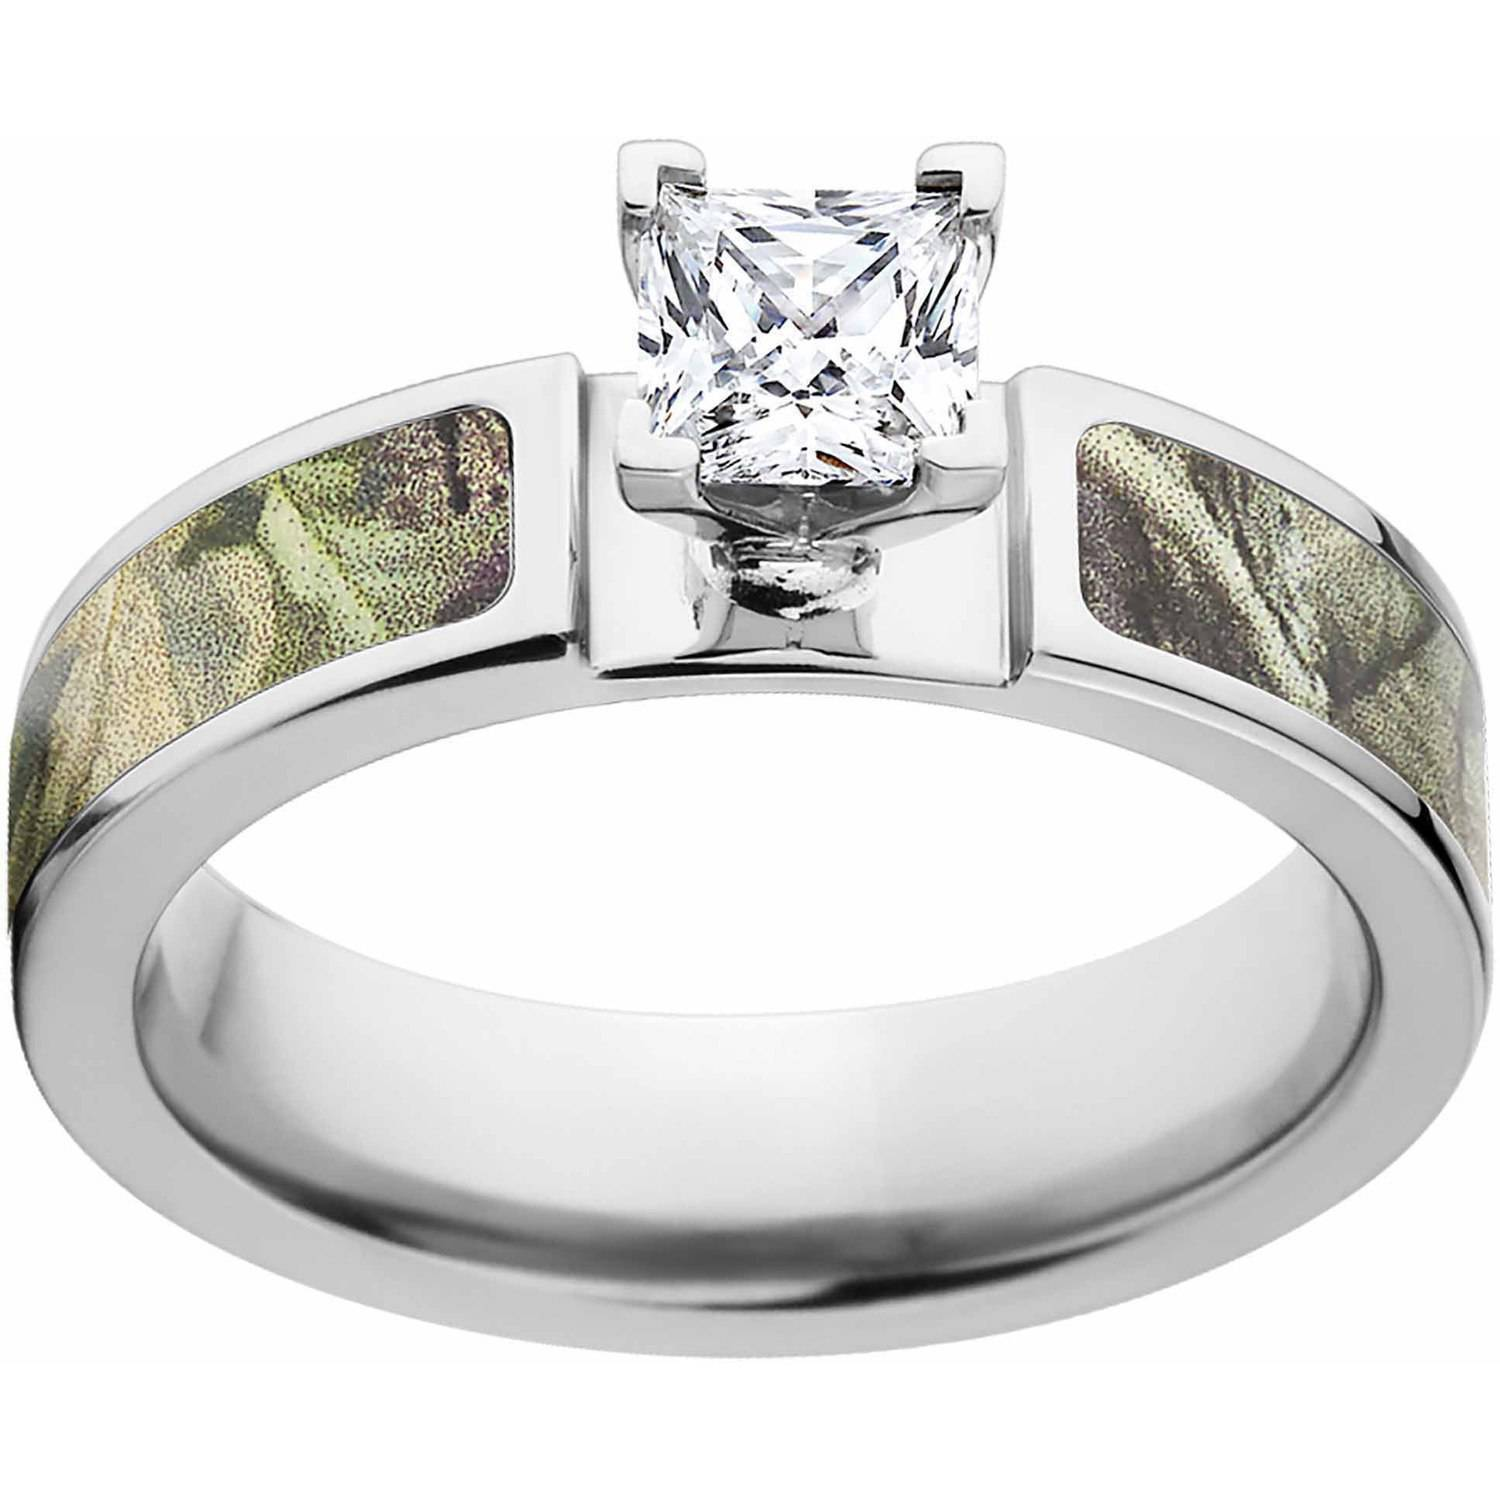 Realtree AP Green Women's Camo 1 Carat T.G.W. Princess CZ in 14kt Whit Gold Prong Setting Cobalt Engagement Ring with Polished Edges and Deluxe Comfort Fit